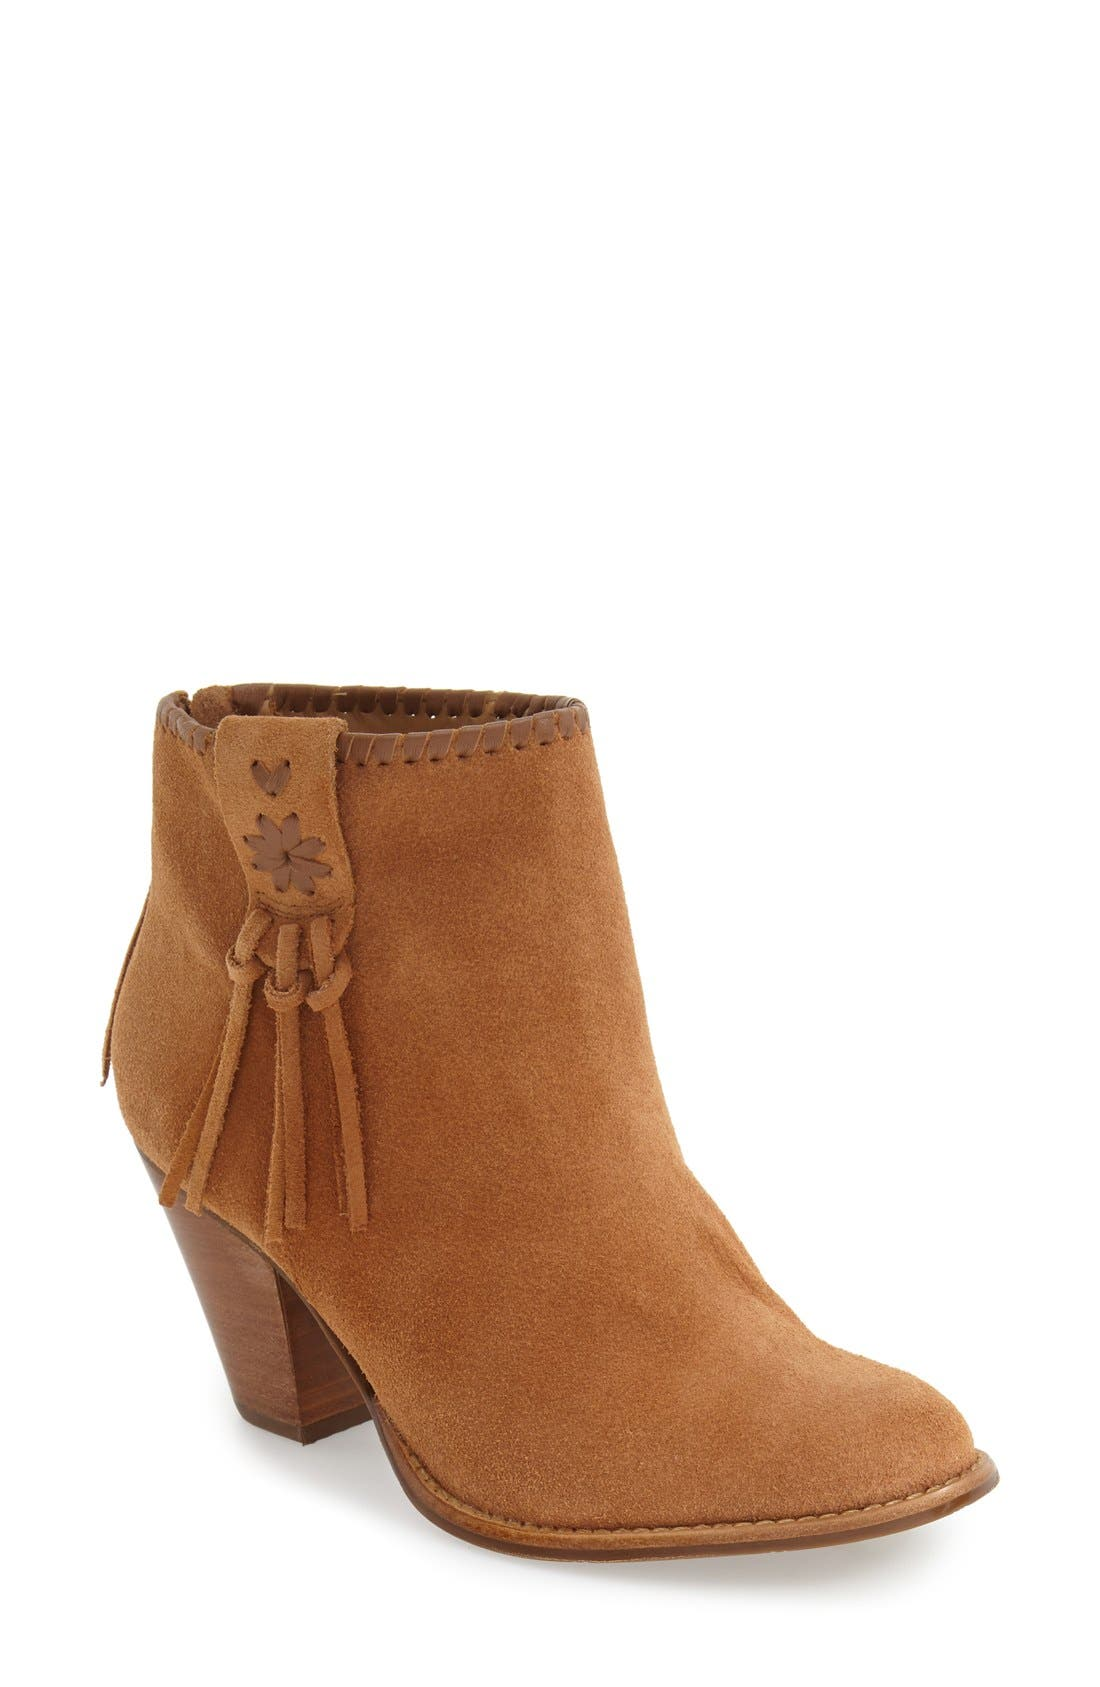 'Greer' Bootie,                             Main thumbnail 3, color,